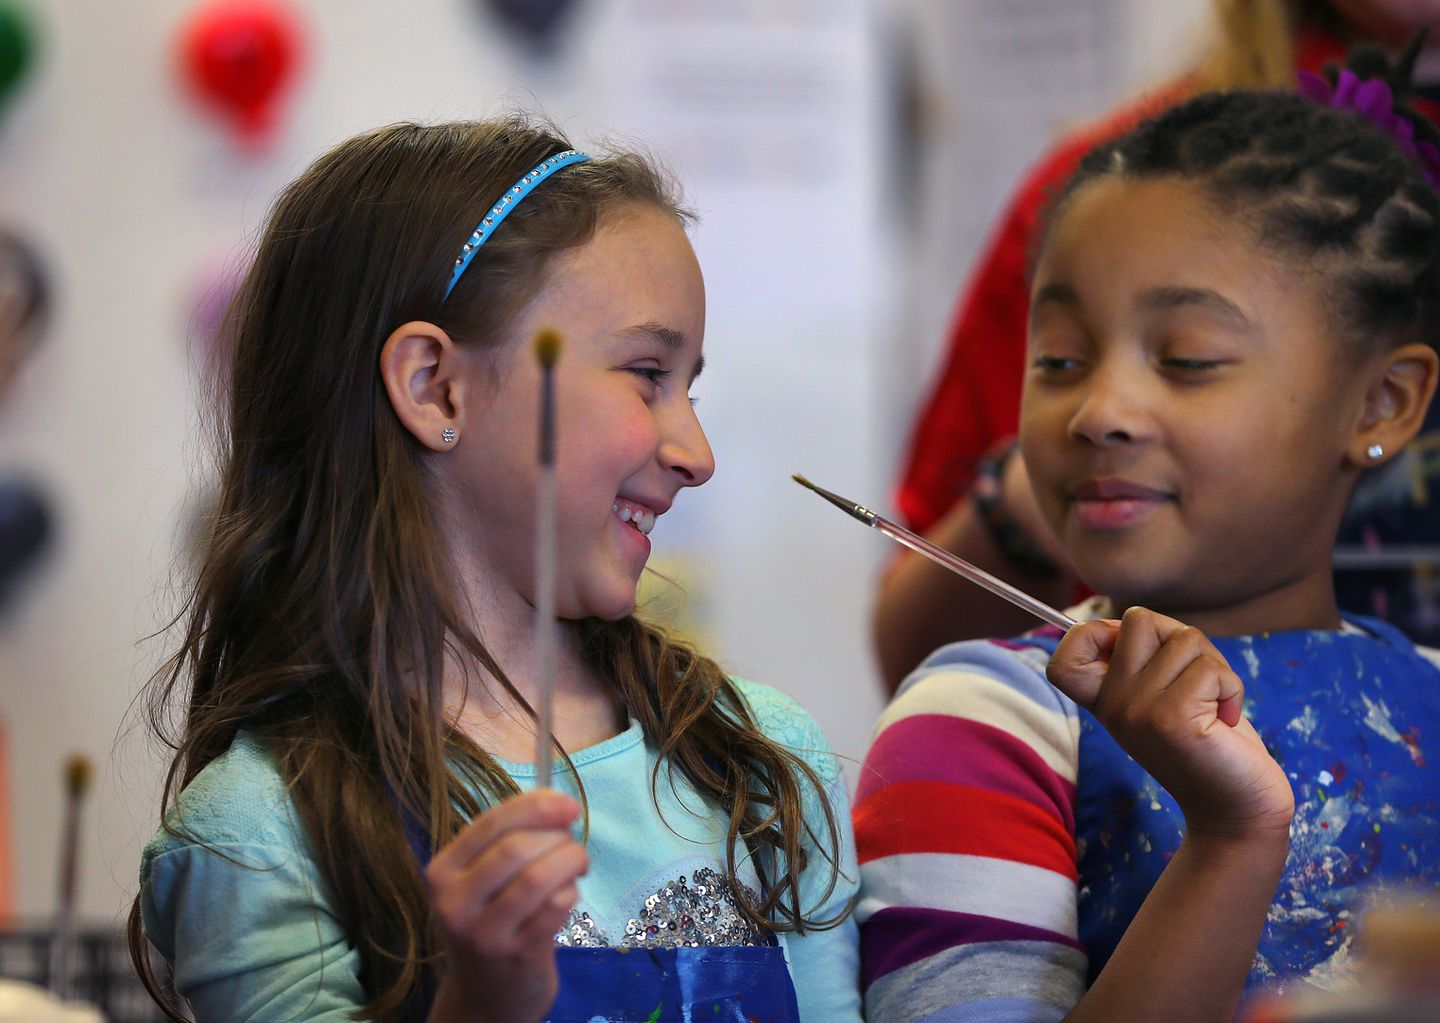 Caitlyn Rose Kasper (left) celebrated her eighth birthday at a party with her friends at Plaster Fun Time.